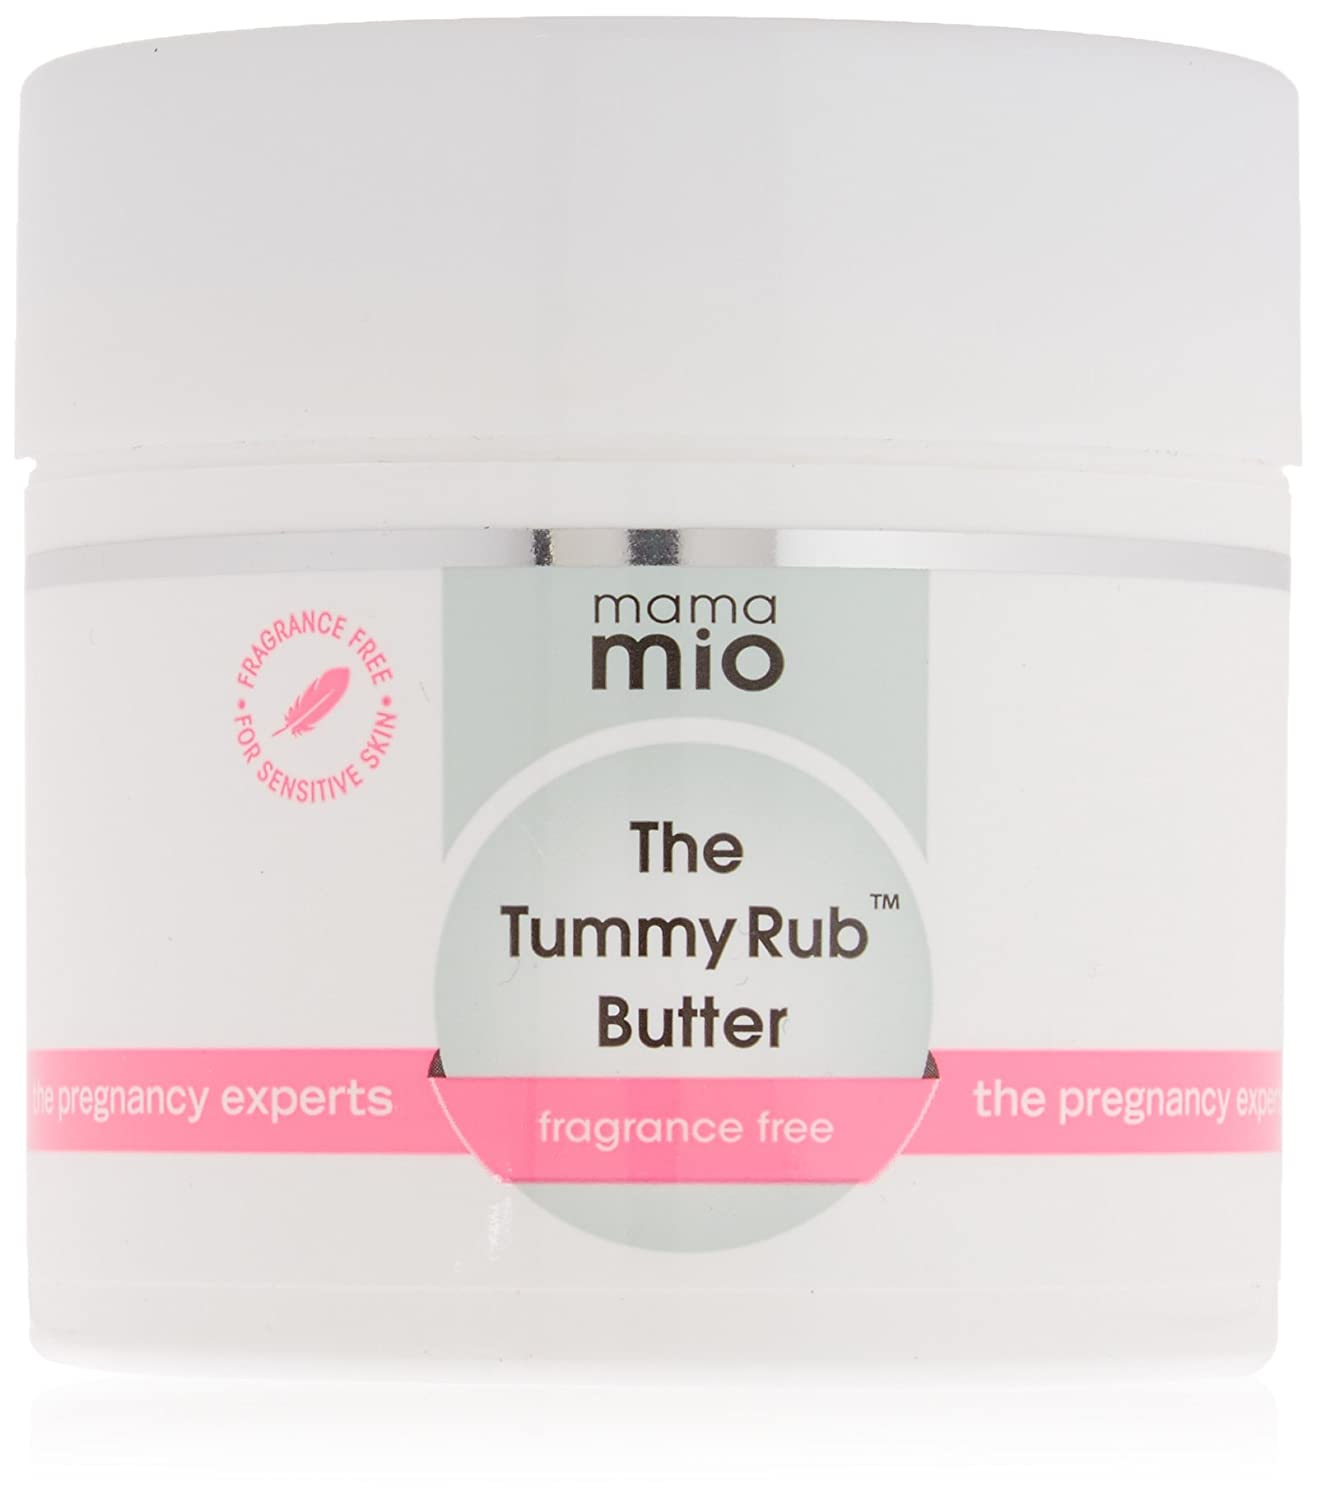 Mama Mio The Tummy Rub Butter - Fragrance Free